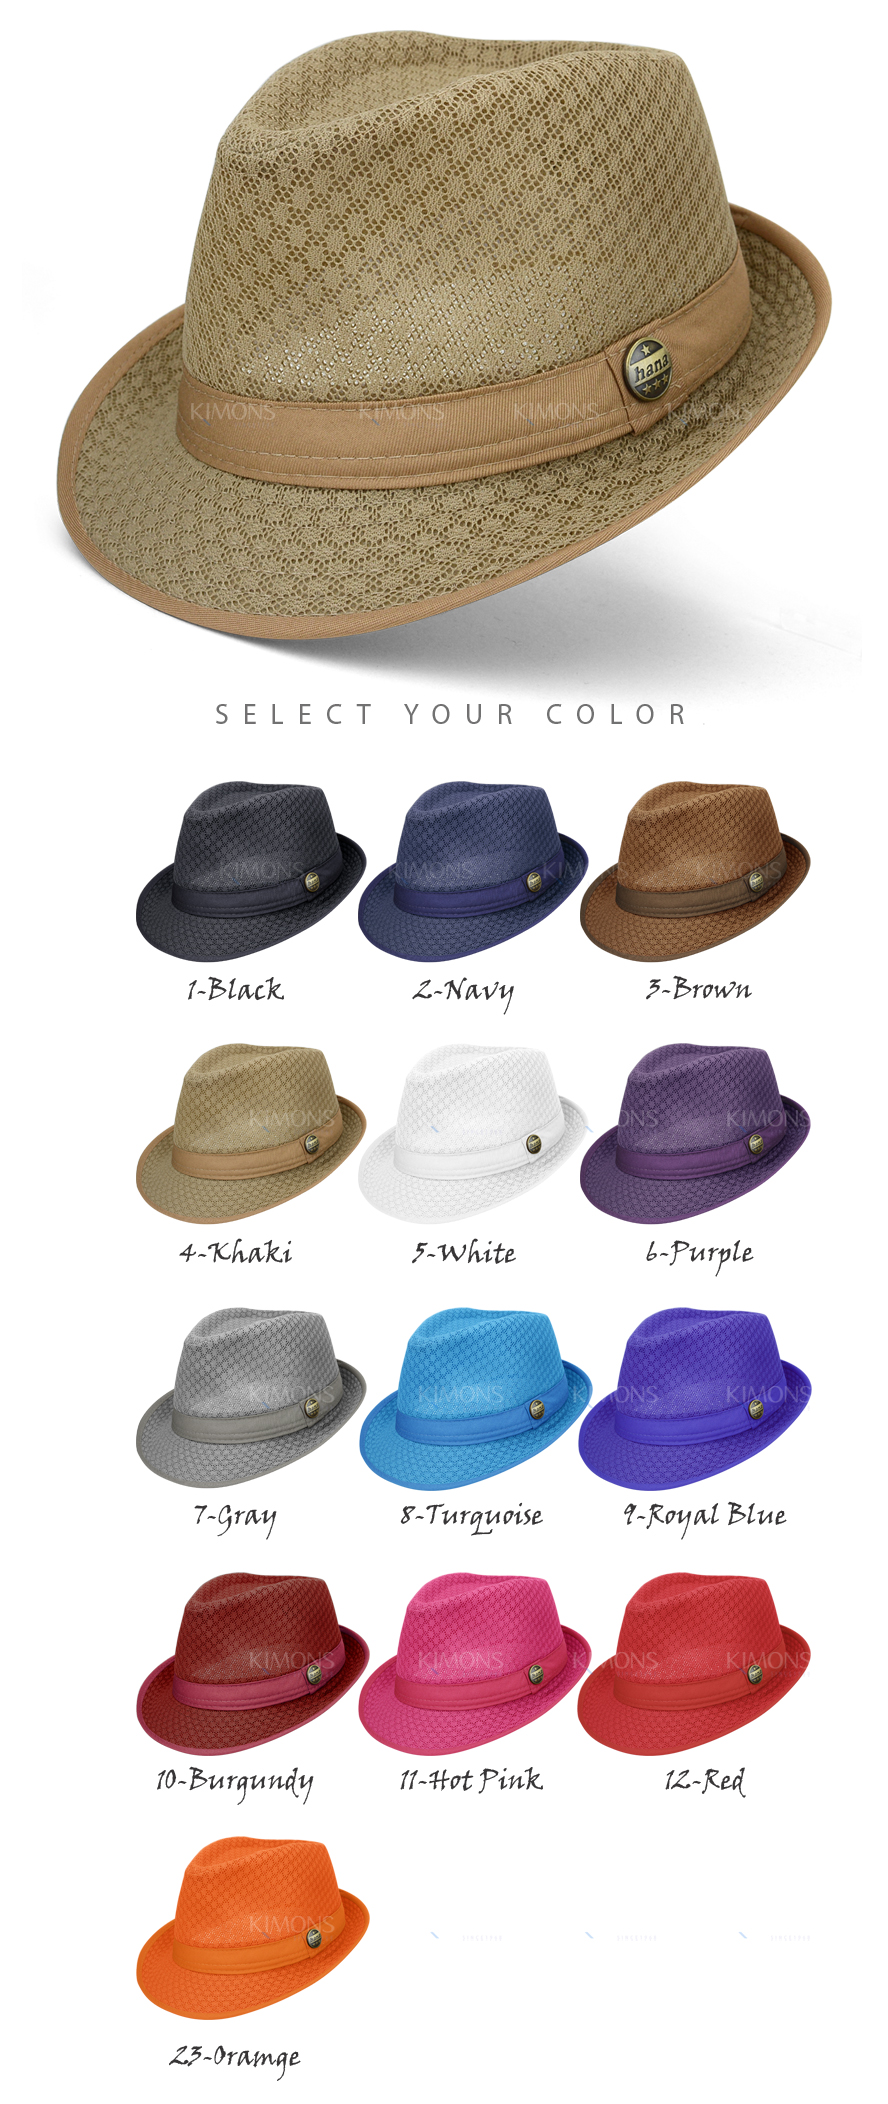 904ca56c3f954 Light Weight Mesh Fedora hat Soft Cool Summer Classic Trilby Cuban ...